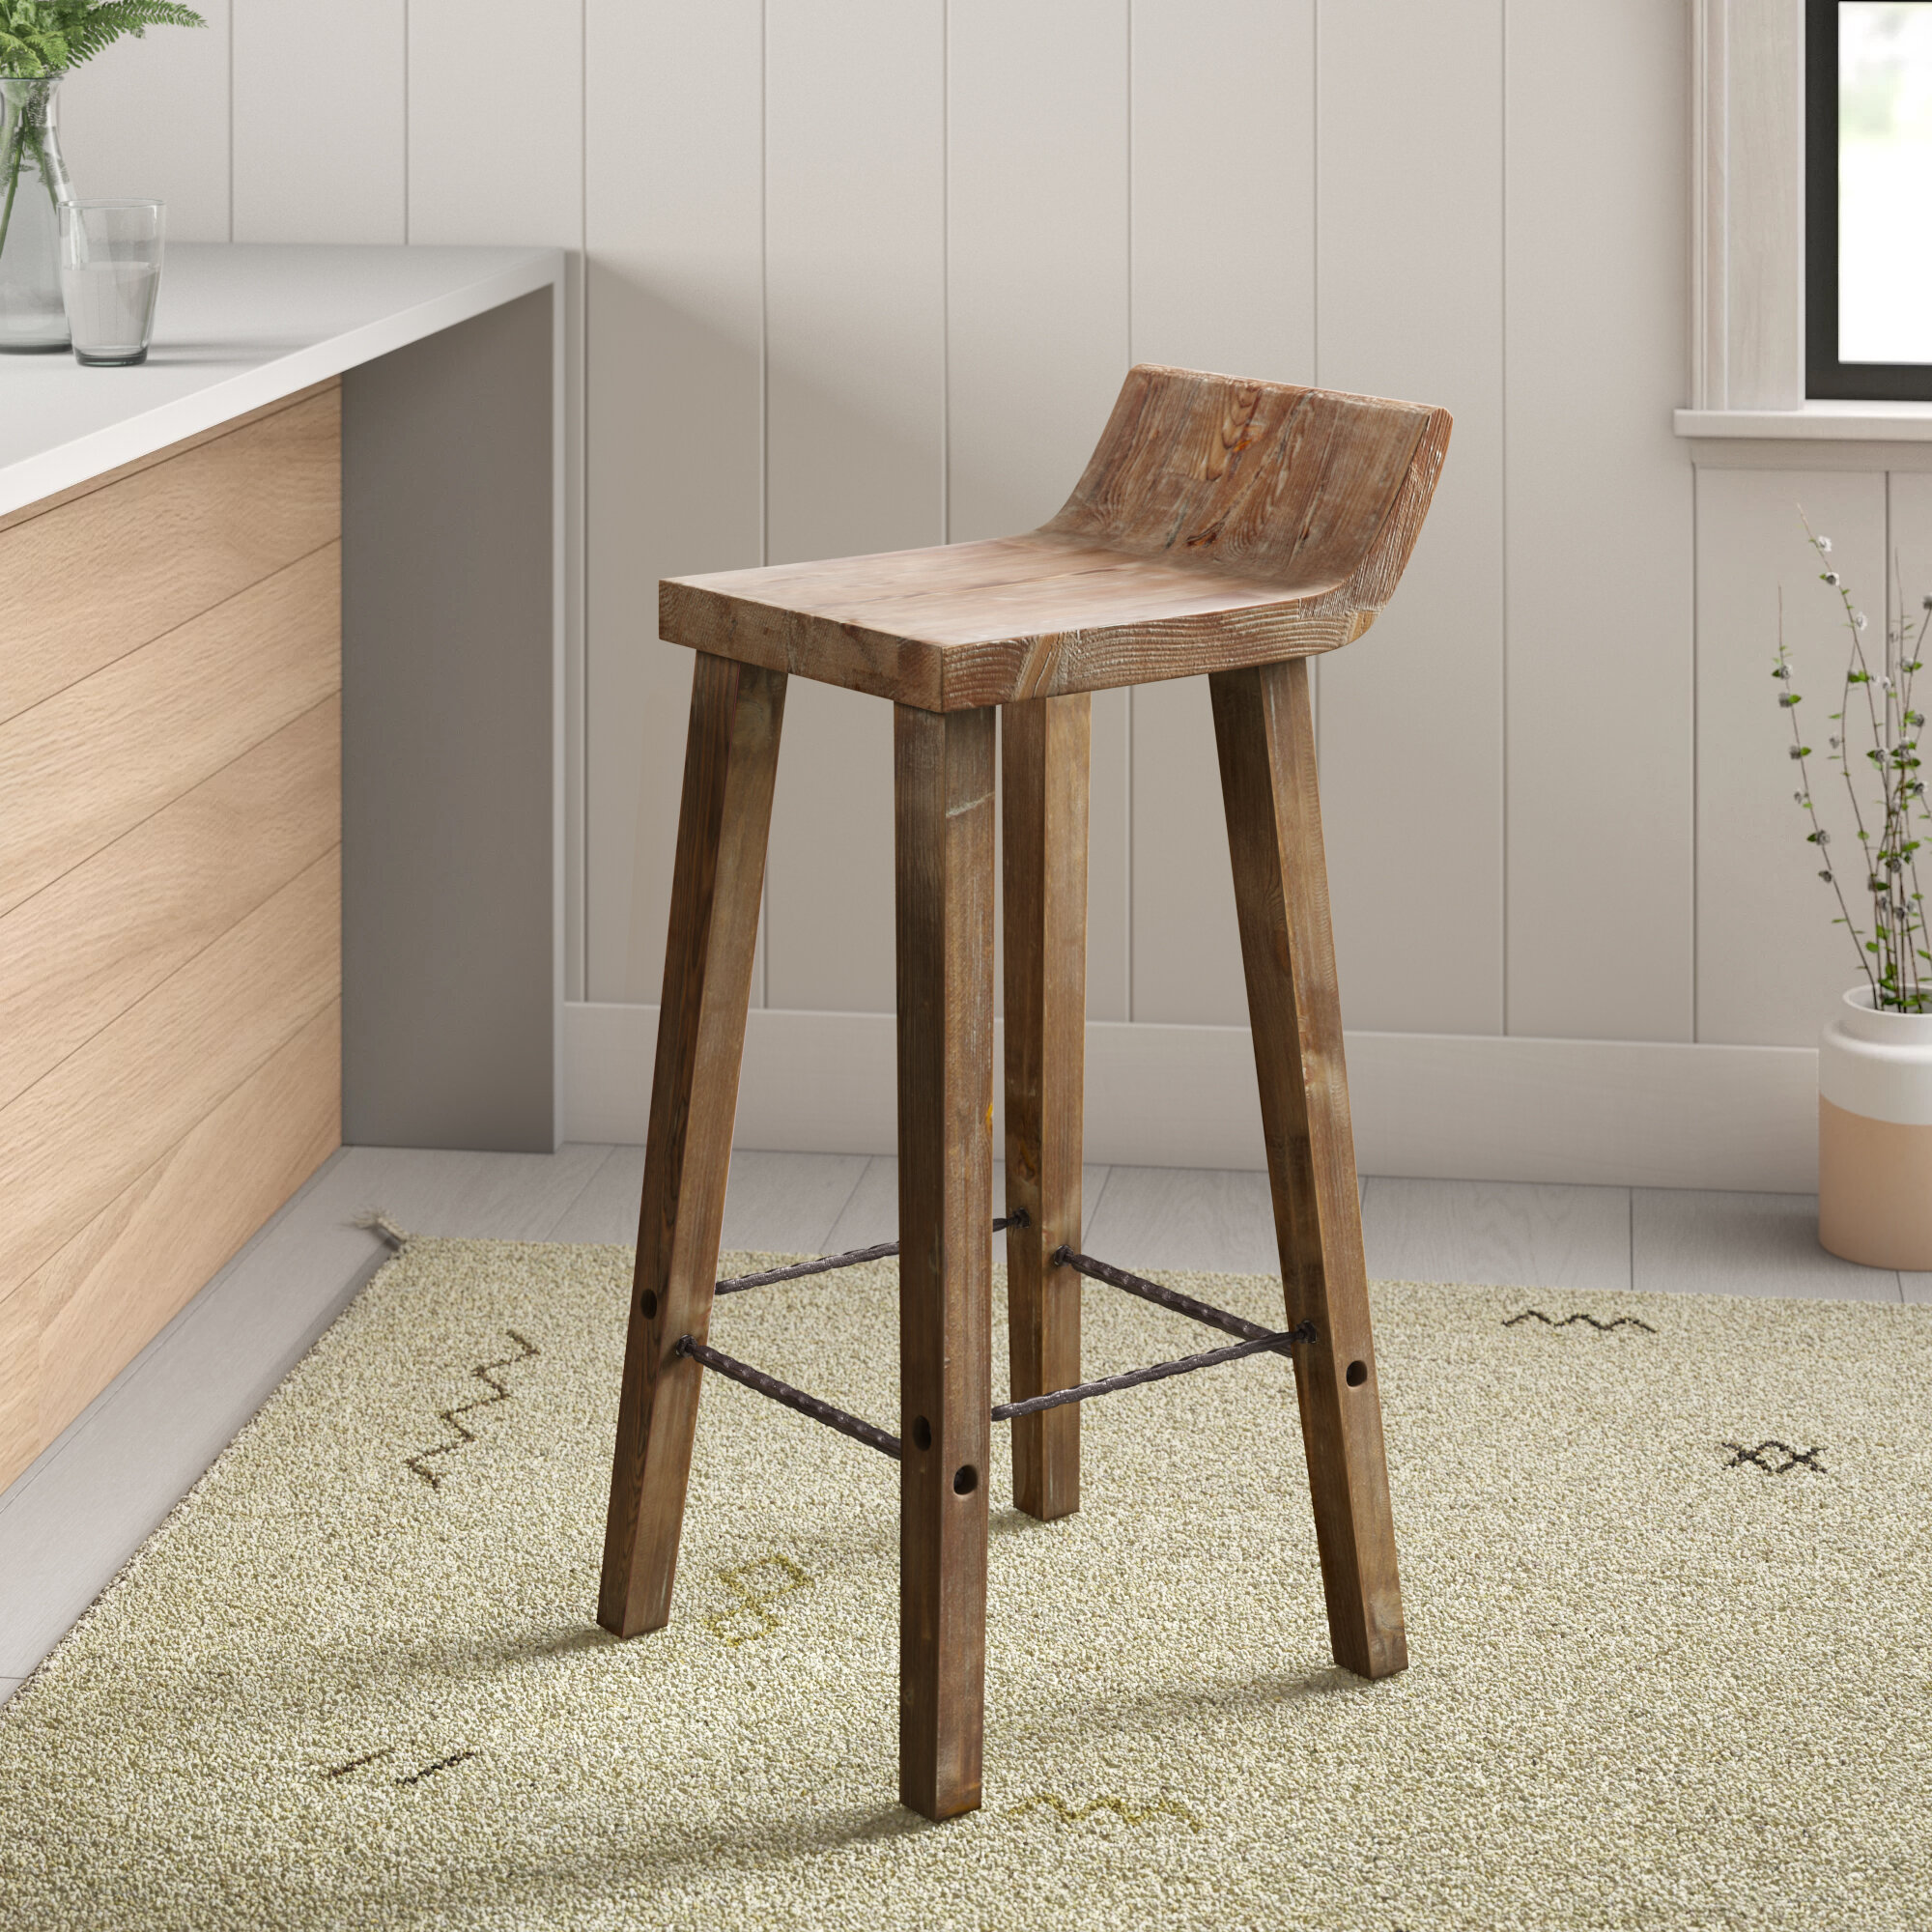 Strange Feinberg Bar Counter Stool Caraccident5 Cool Chair Designs And Ideas Caraccident5Info